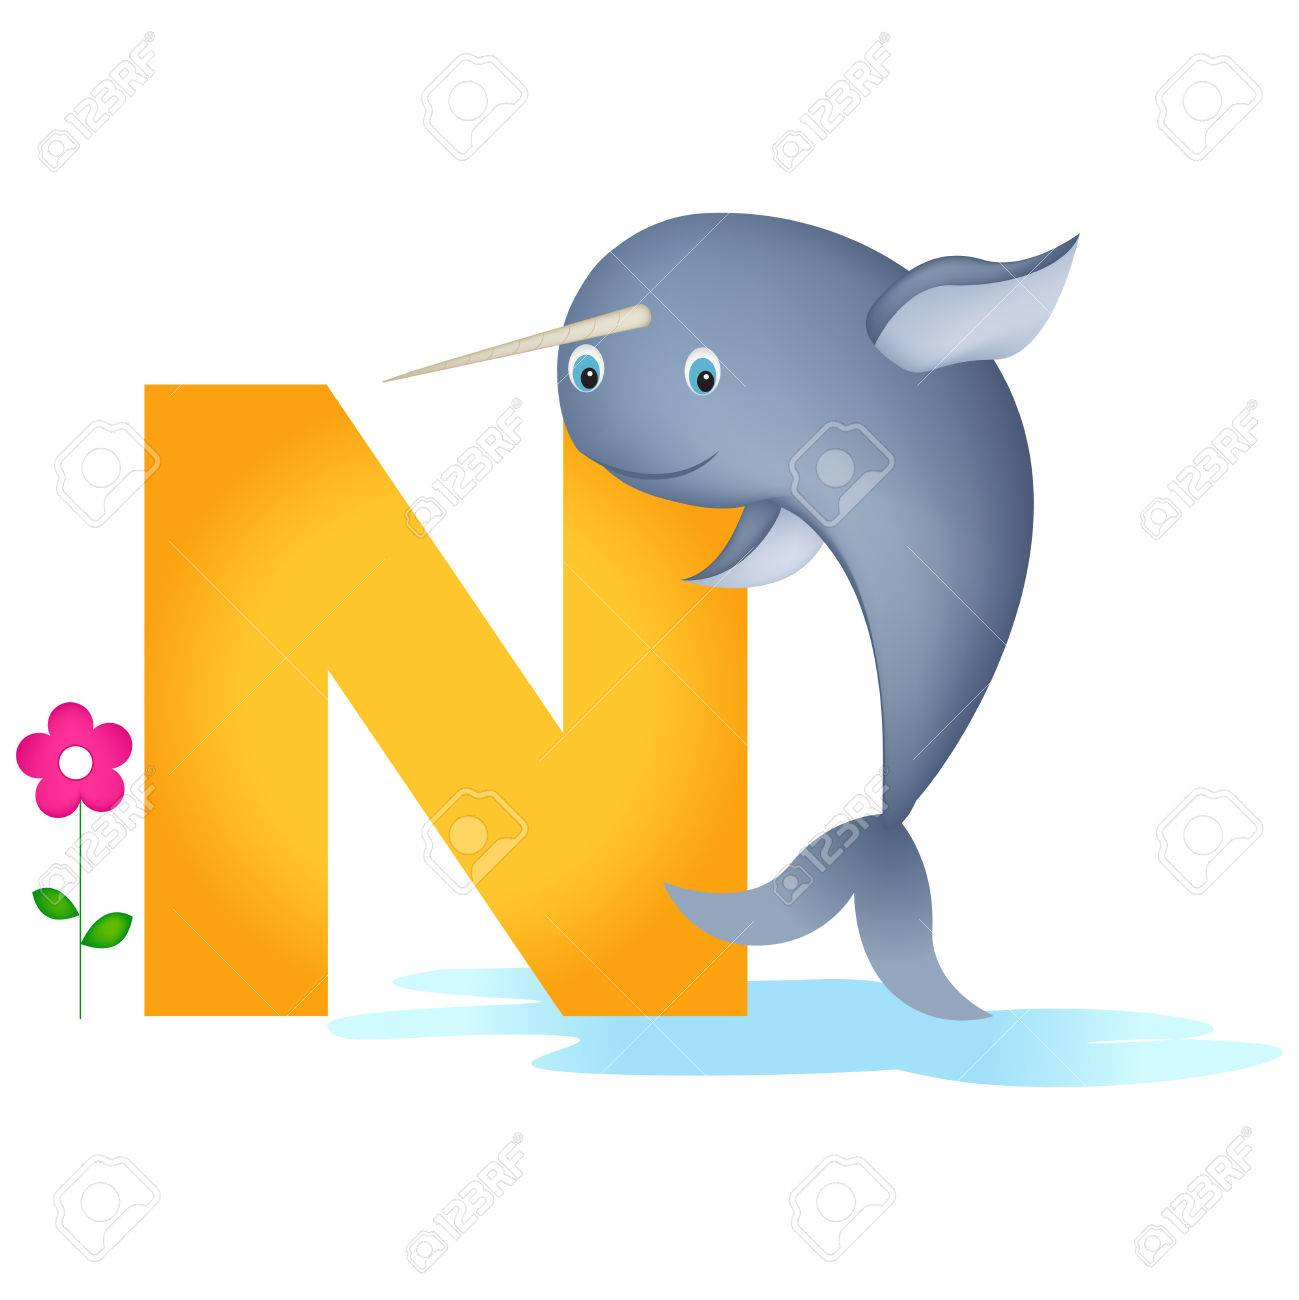 Colorful Animal Alphabet Letter N With A Cute Narwhal Flash Card